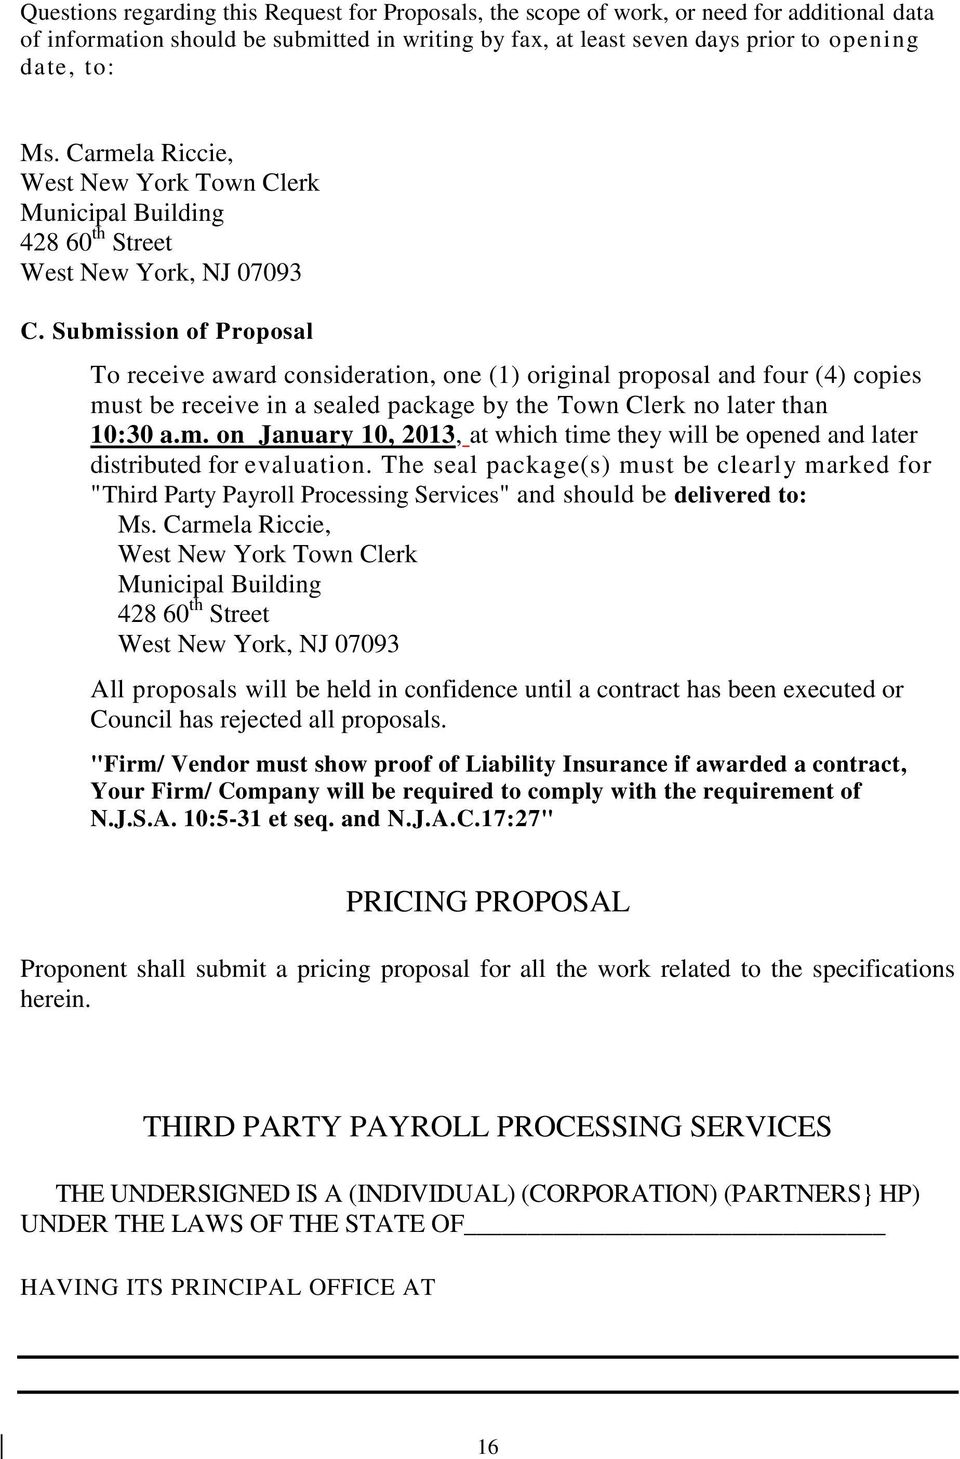 Submission of Proposal To receive award consideration, one (1) original proposal and four (4) copies must be receive in a sealed package by the Town Clerk no later than 10:30 a.m. on January 10, 2013, at which time they will be opened and later distributed for evaluation.